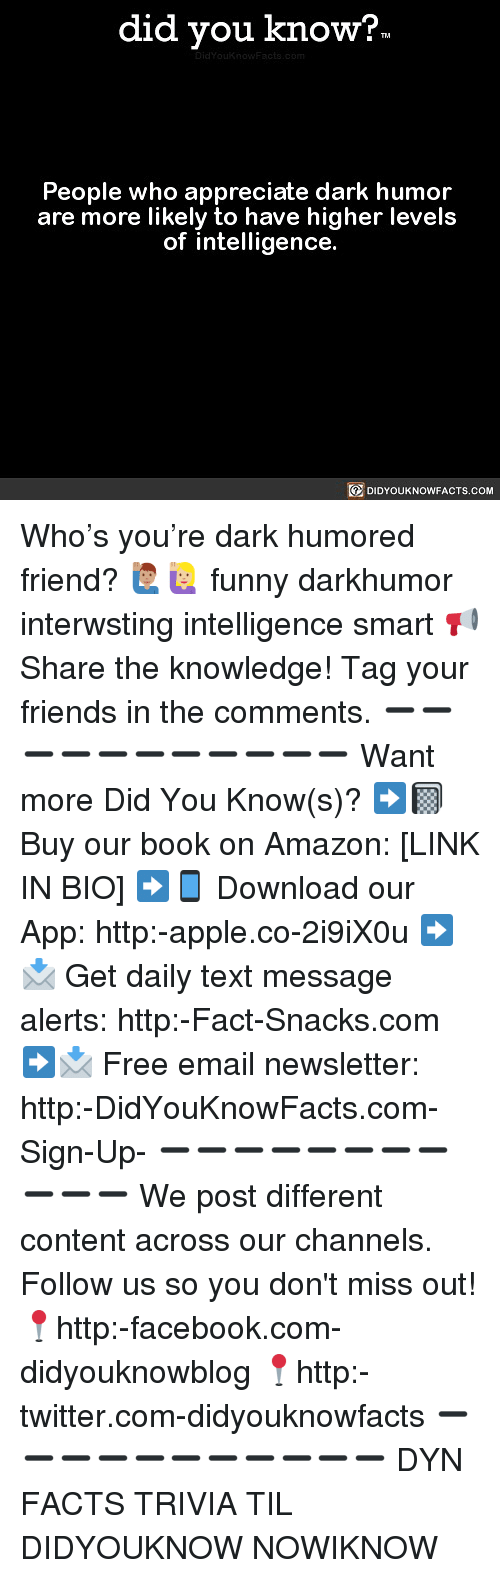 Amazon, Apple, and Facebook: did you know?  People who appreciate dark humor  are more likely to have higher levels  of intelligence.  DIDYOUKNOWFACTS.COM Who's you're dark humored friend? 🙋🏽♂️🙋🏼 funny darkhumor interwsting intelligence smart 📢 Share the knowledge! Tag your friends in the comments. ➖➖➖➖➖➖➖➖➖➖➖ Want more Did You Know(s)? ➡📓 Buy our book on Amazon: [LINK IN BIO] ➡📱 Download our App: http:-apple.co-2i9iX0u ➡📩 Get daily text message alerts: http:-Fact-Snacks.com ➡📩 Free email newsletter: http:-DidYouKnowFacts.com-Sign-Up- ➖➖➖➖➖➖➖➖➖➖➖ We post different content across our channels. Follow us so you don't miss out! 📍http:-facebook.com-didyouknowblog 📍http:-twitter.com-didyouknowfacts ➖➖➖➖➖➖➖➖➖➖➖ DYN FACTS TRIVIA TIL DIDYOUKNOW NOWIKNOW